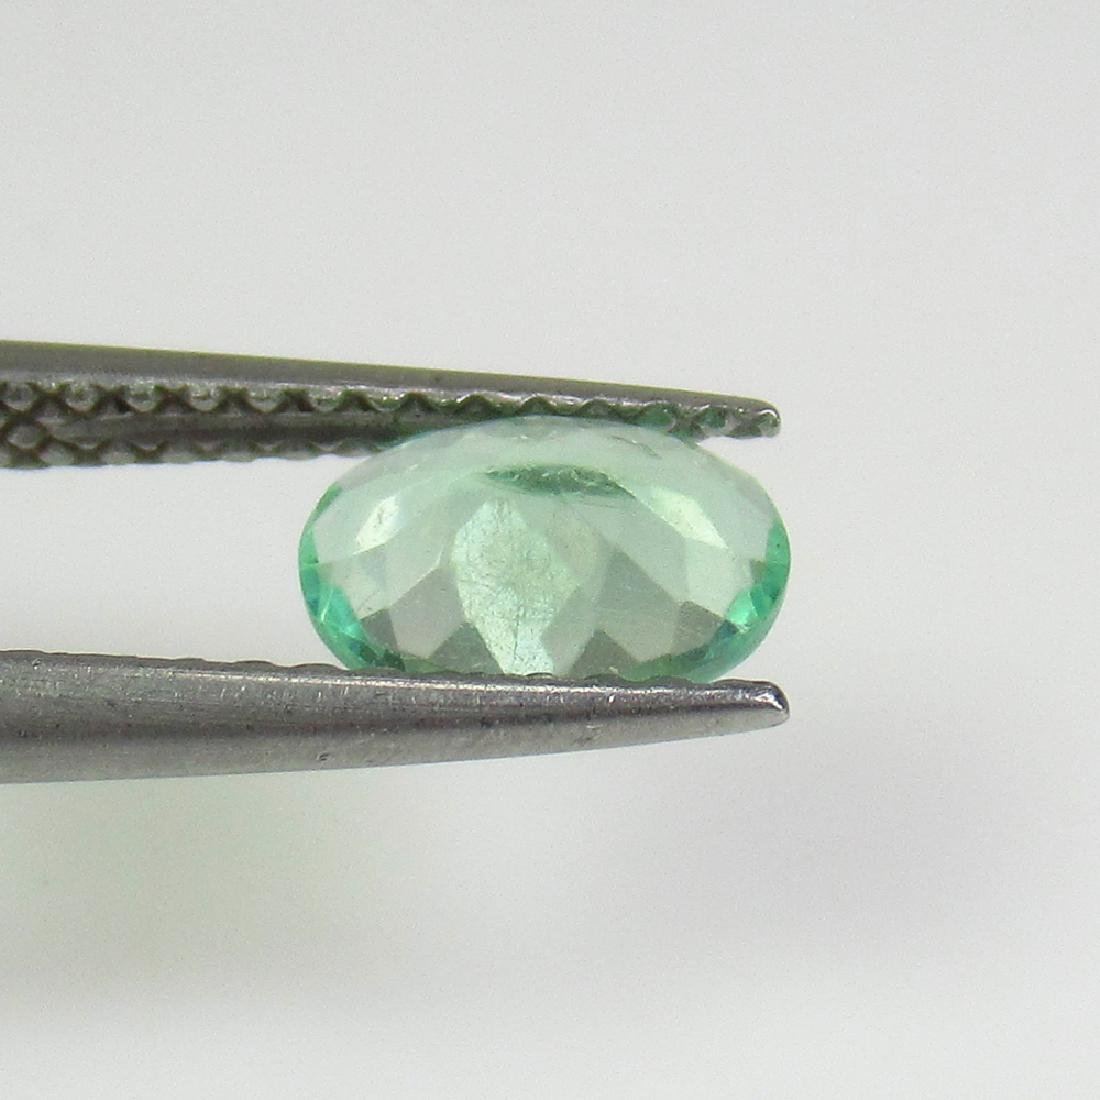 0.65 Ctw Natural Green Apatite Oval Cut - 2